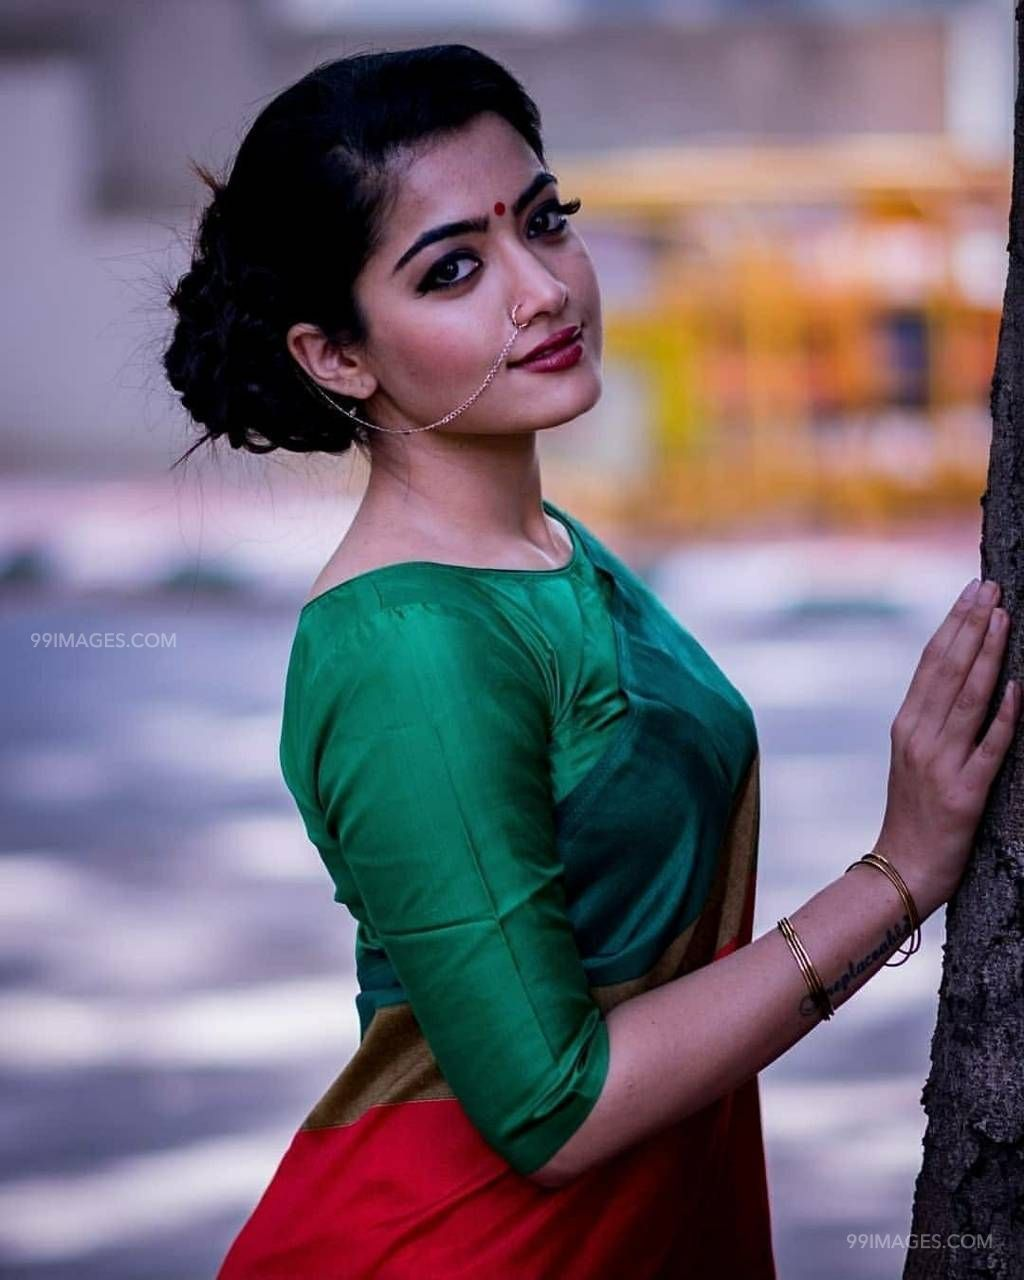 Rashmika Mandanna Beautiful Hd Photos Mobile Wallpapers Hd Android Iphone 1080p With Images Most Beautiful Indian Actress Beauty Images Celebrity Wallpapers